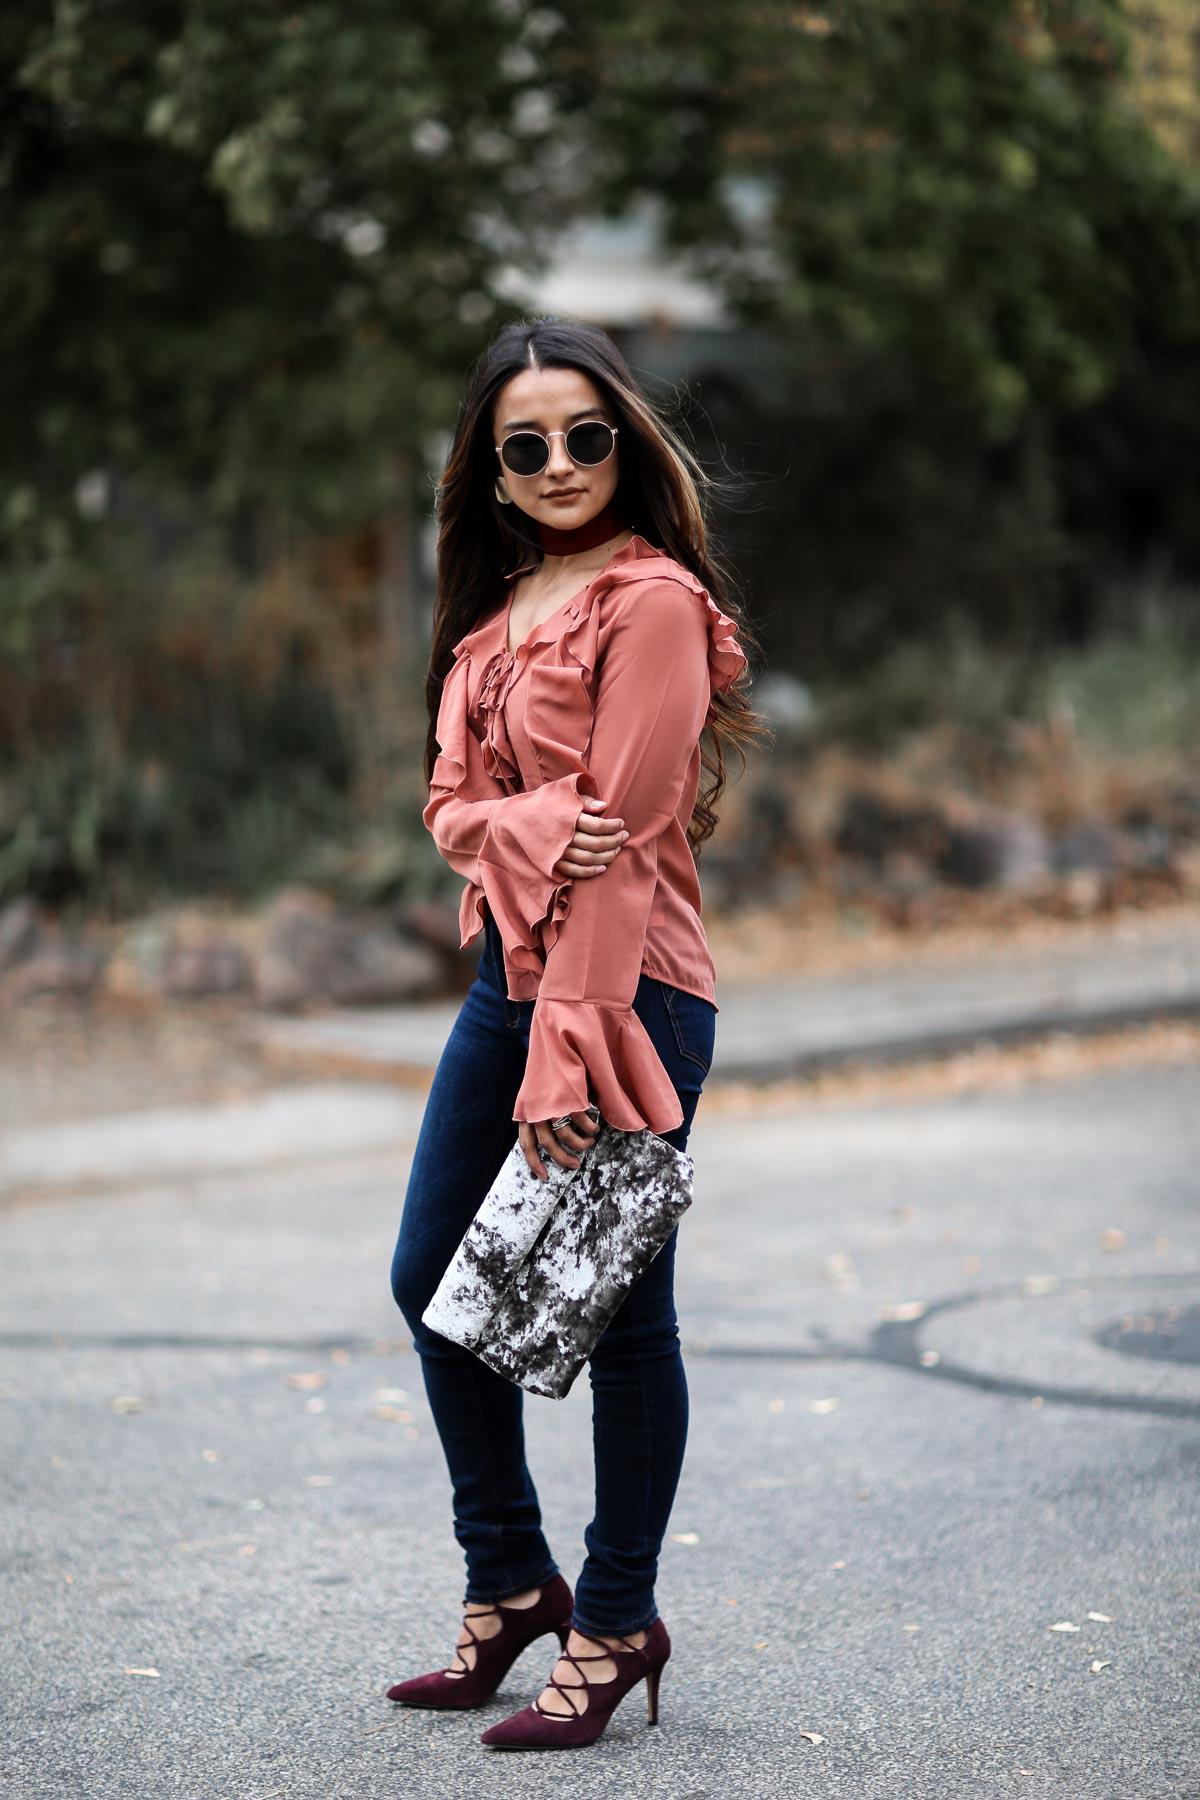 stiletto-confessions-forever21-ruffle-blouse-56